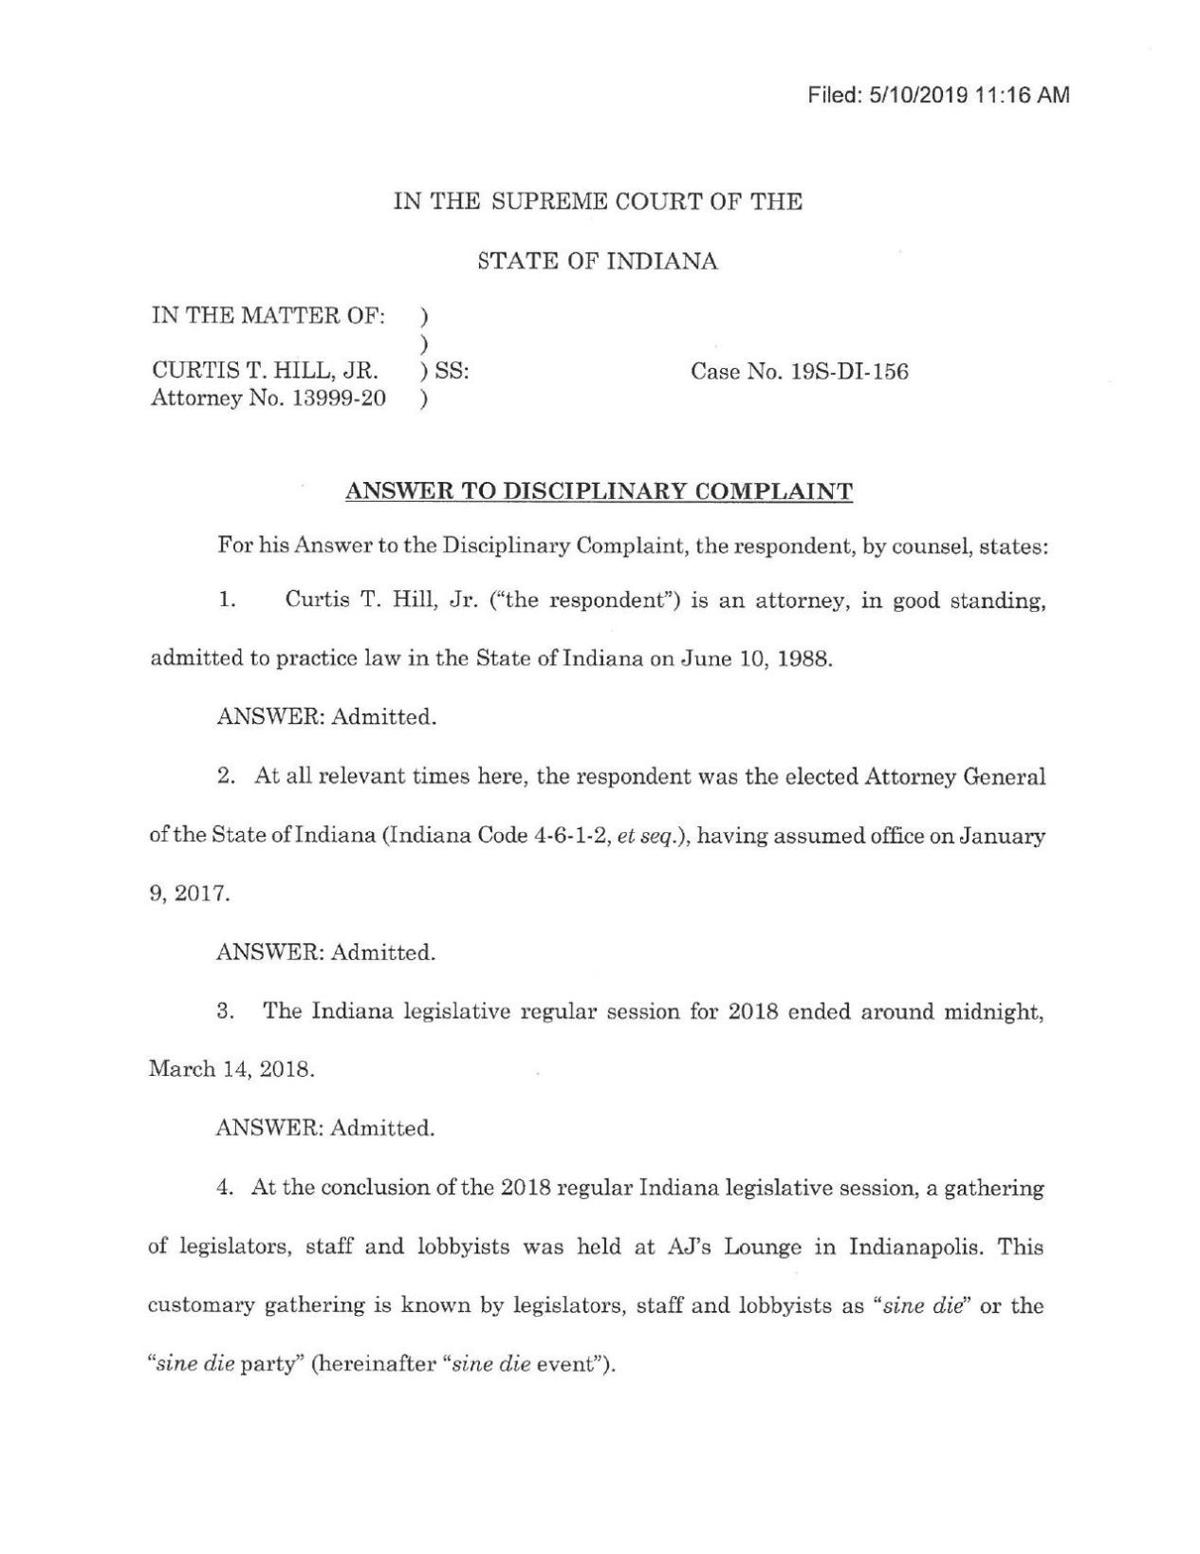 Response by Attorney General Curtis Hill Jr. to attorney discipline complaint